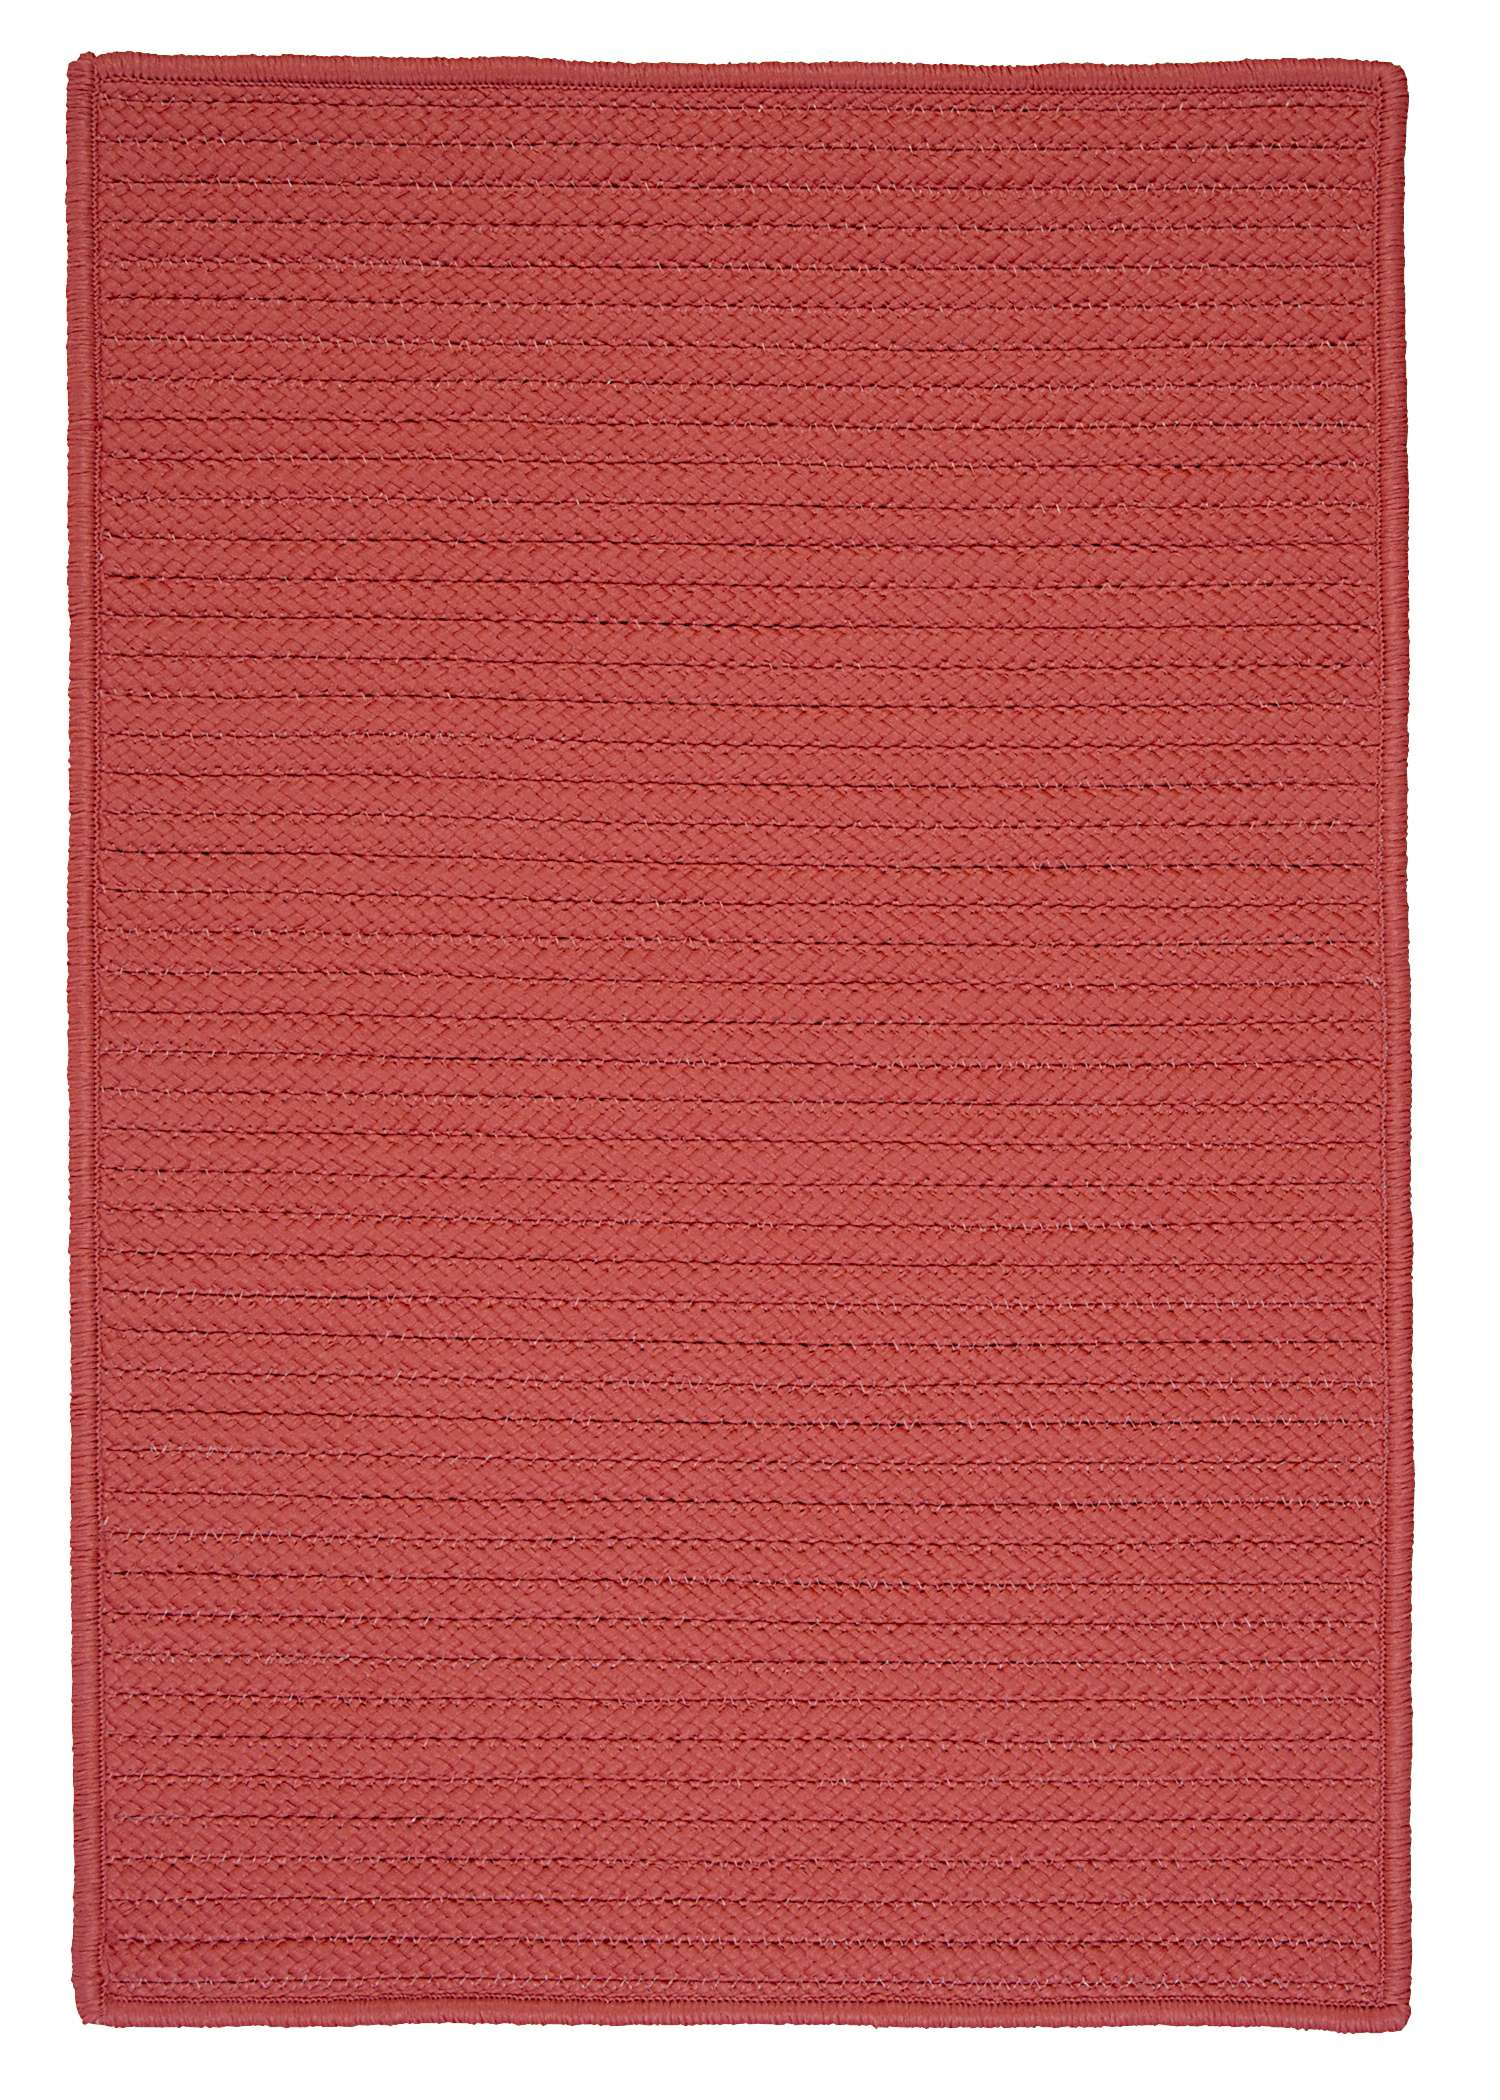 Simply Home Solid Terracotta 10'x13' Rectangular Rug